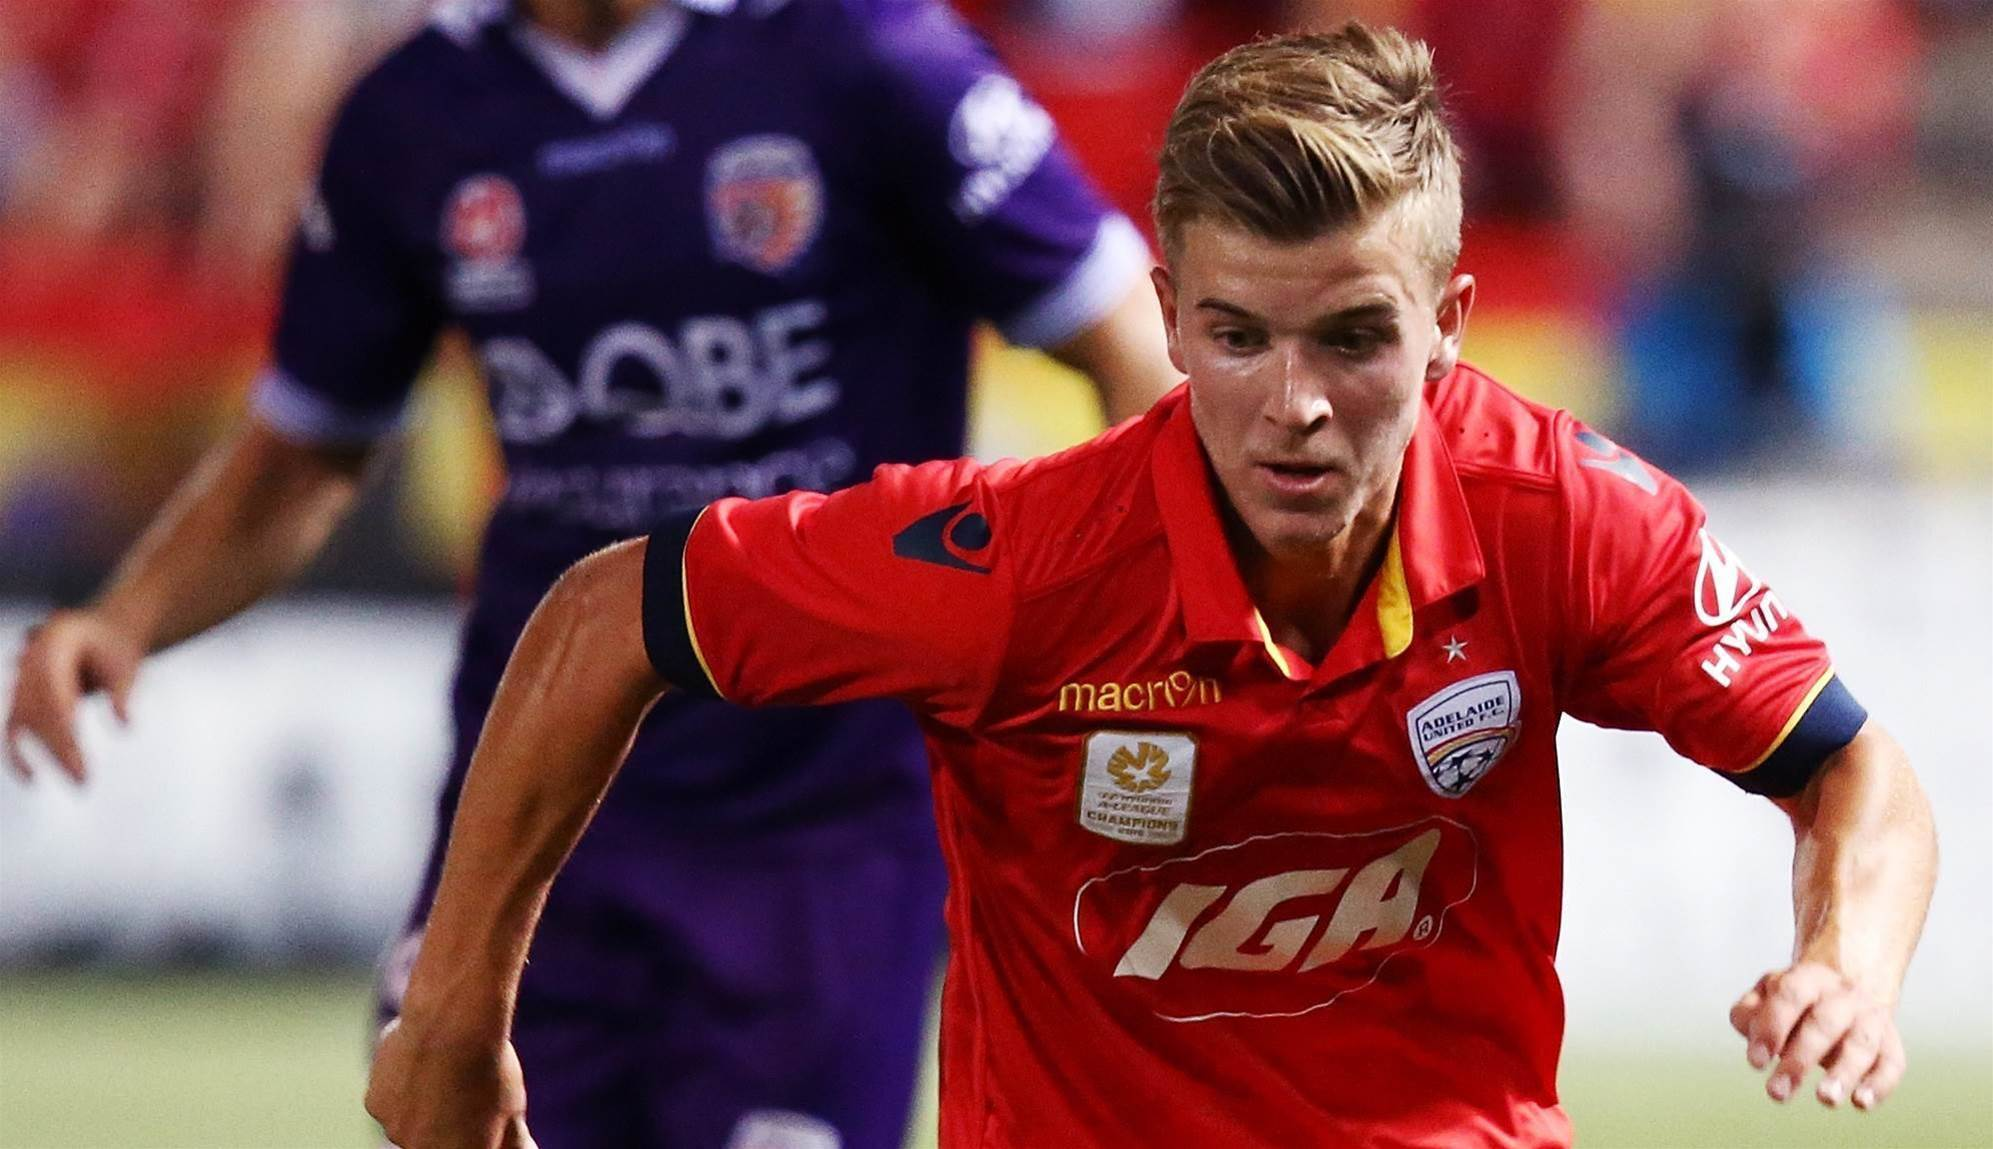 McGree thought call-up was a prank